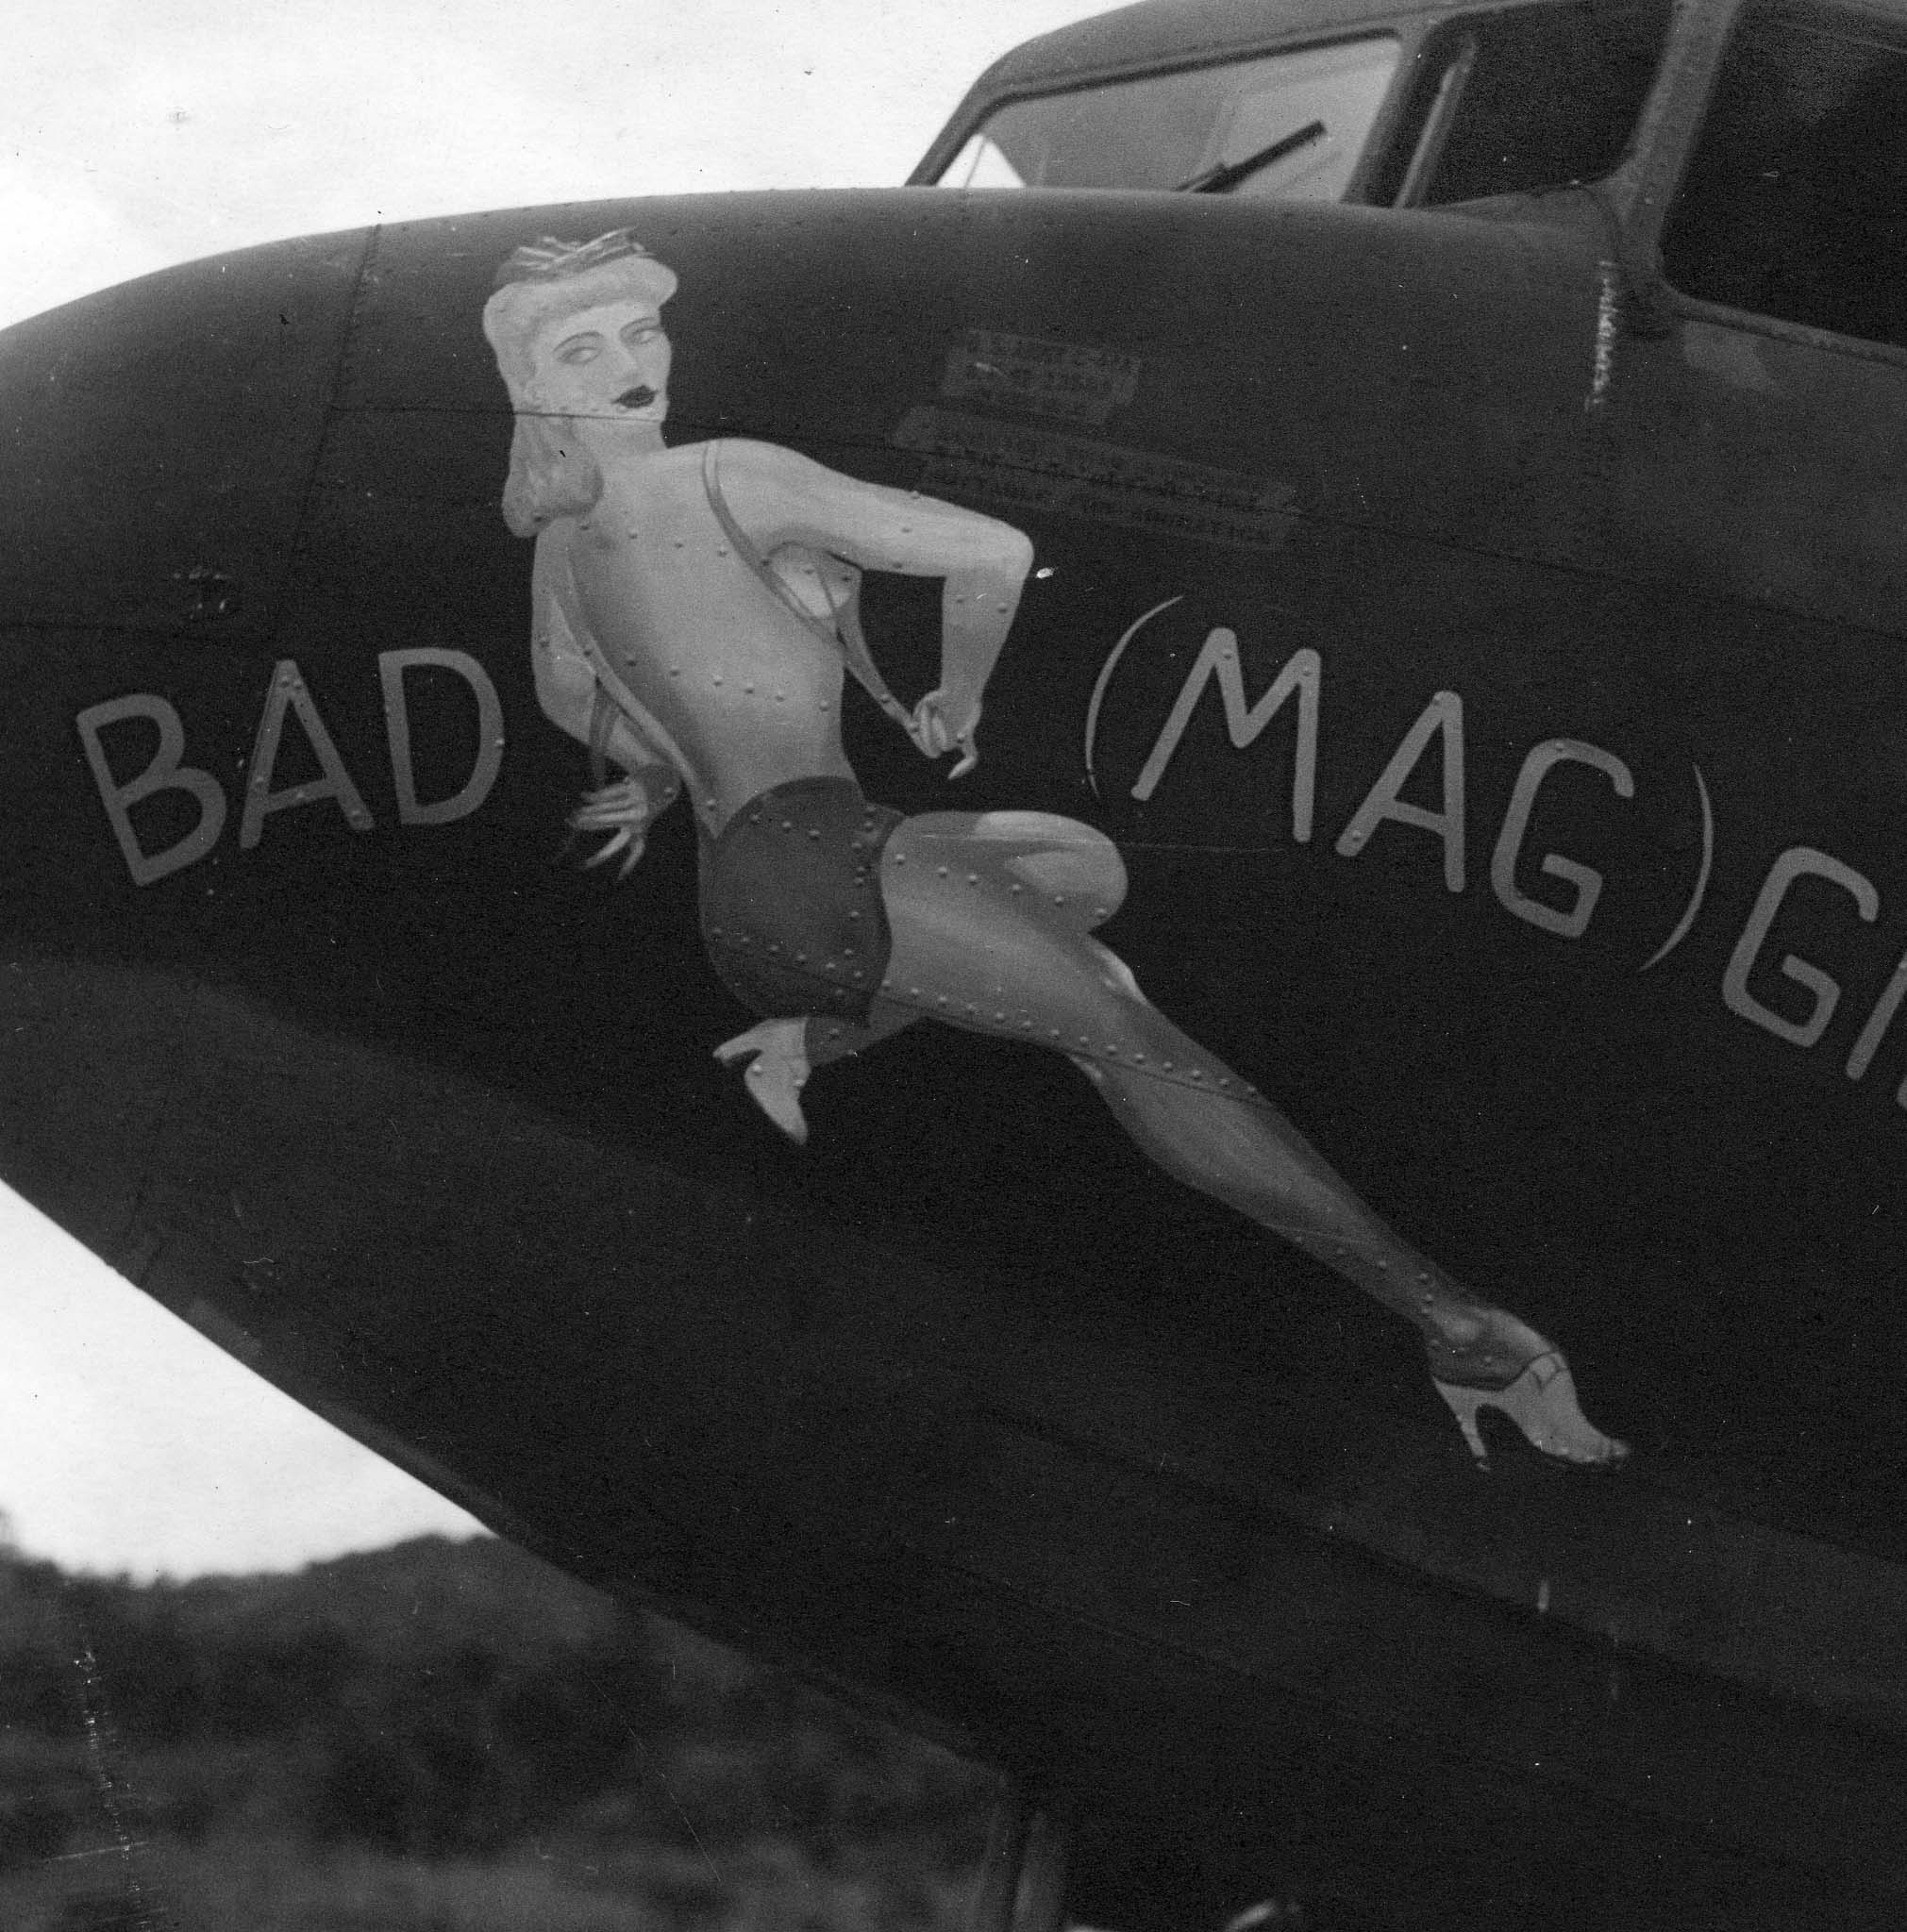 Bad Maggie : C-47 : Planes from Unknown Groups or Squadrons : Sharpe 2 (Thomas Sharpe Collection)